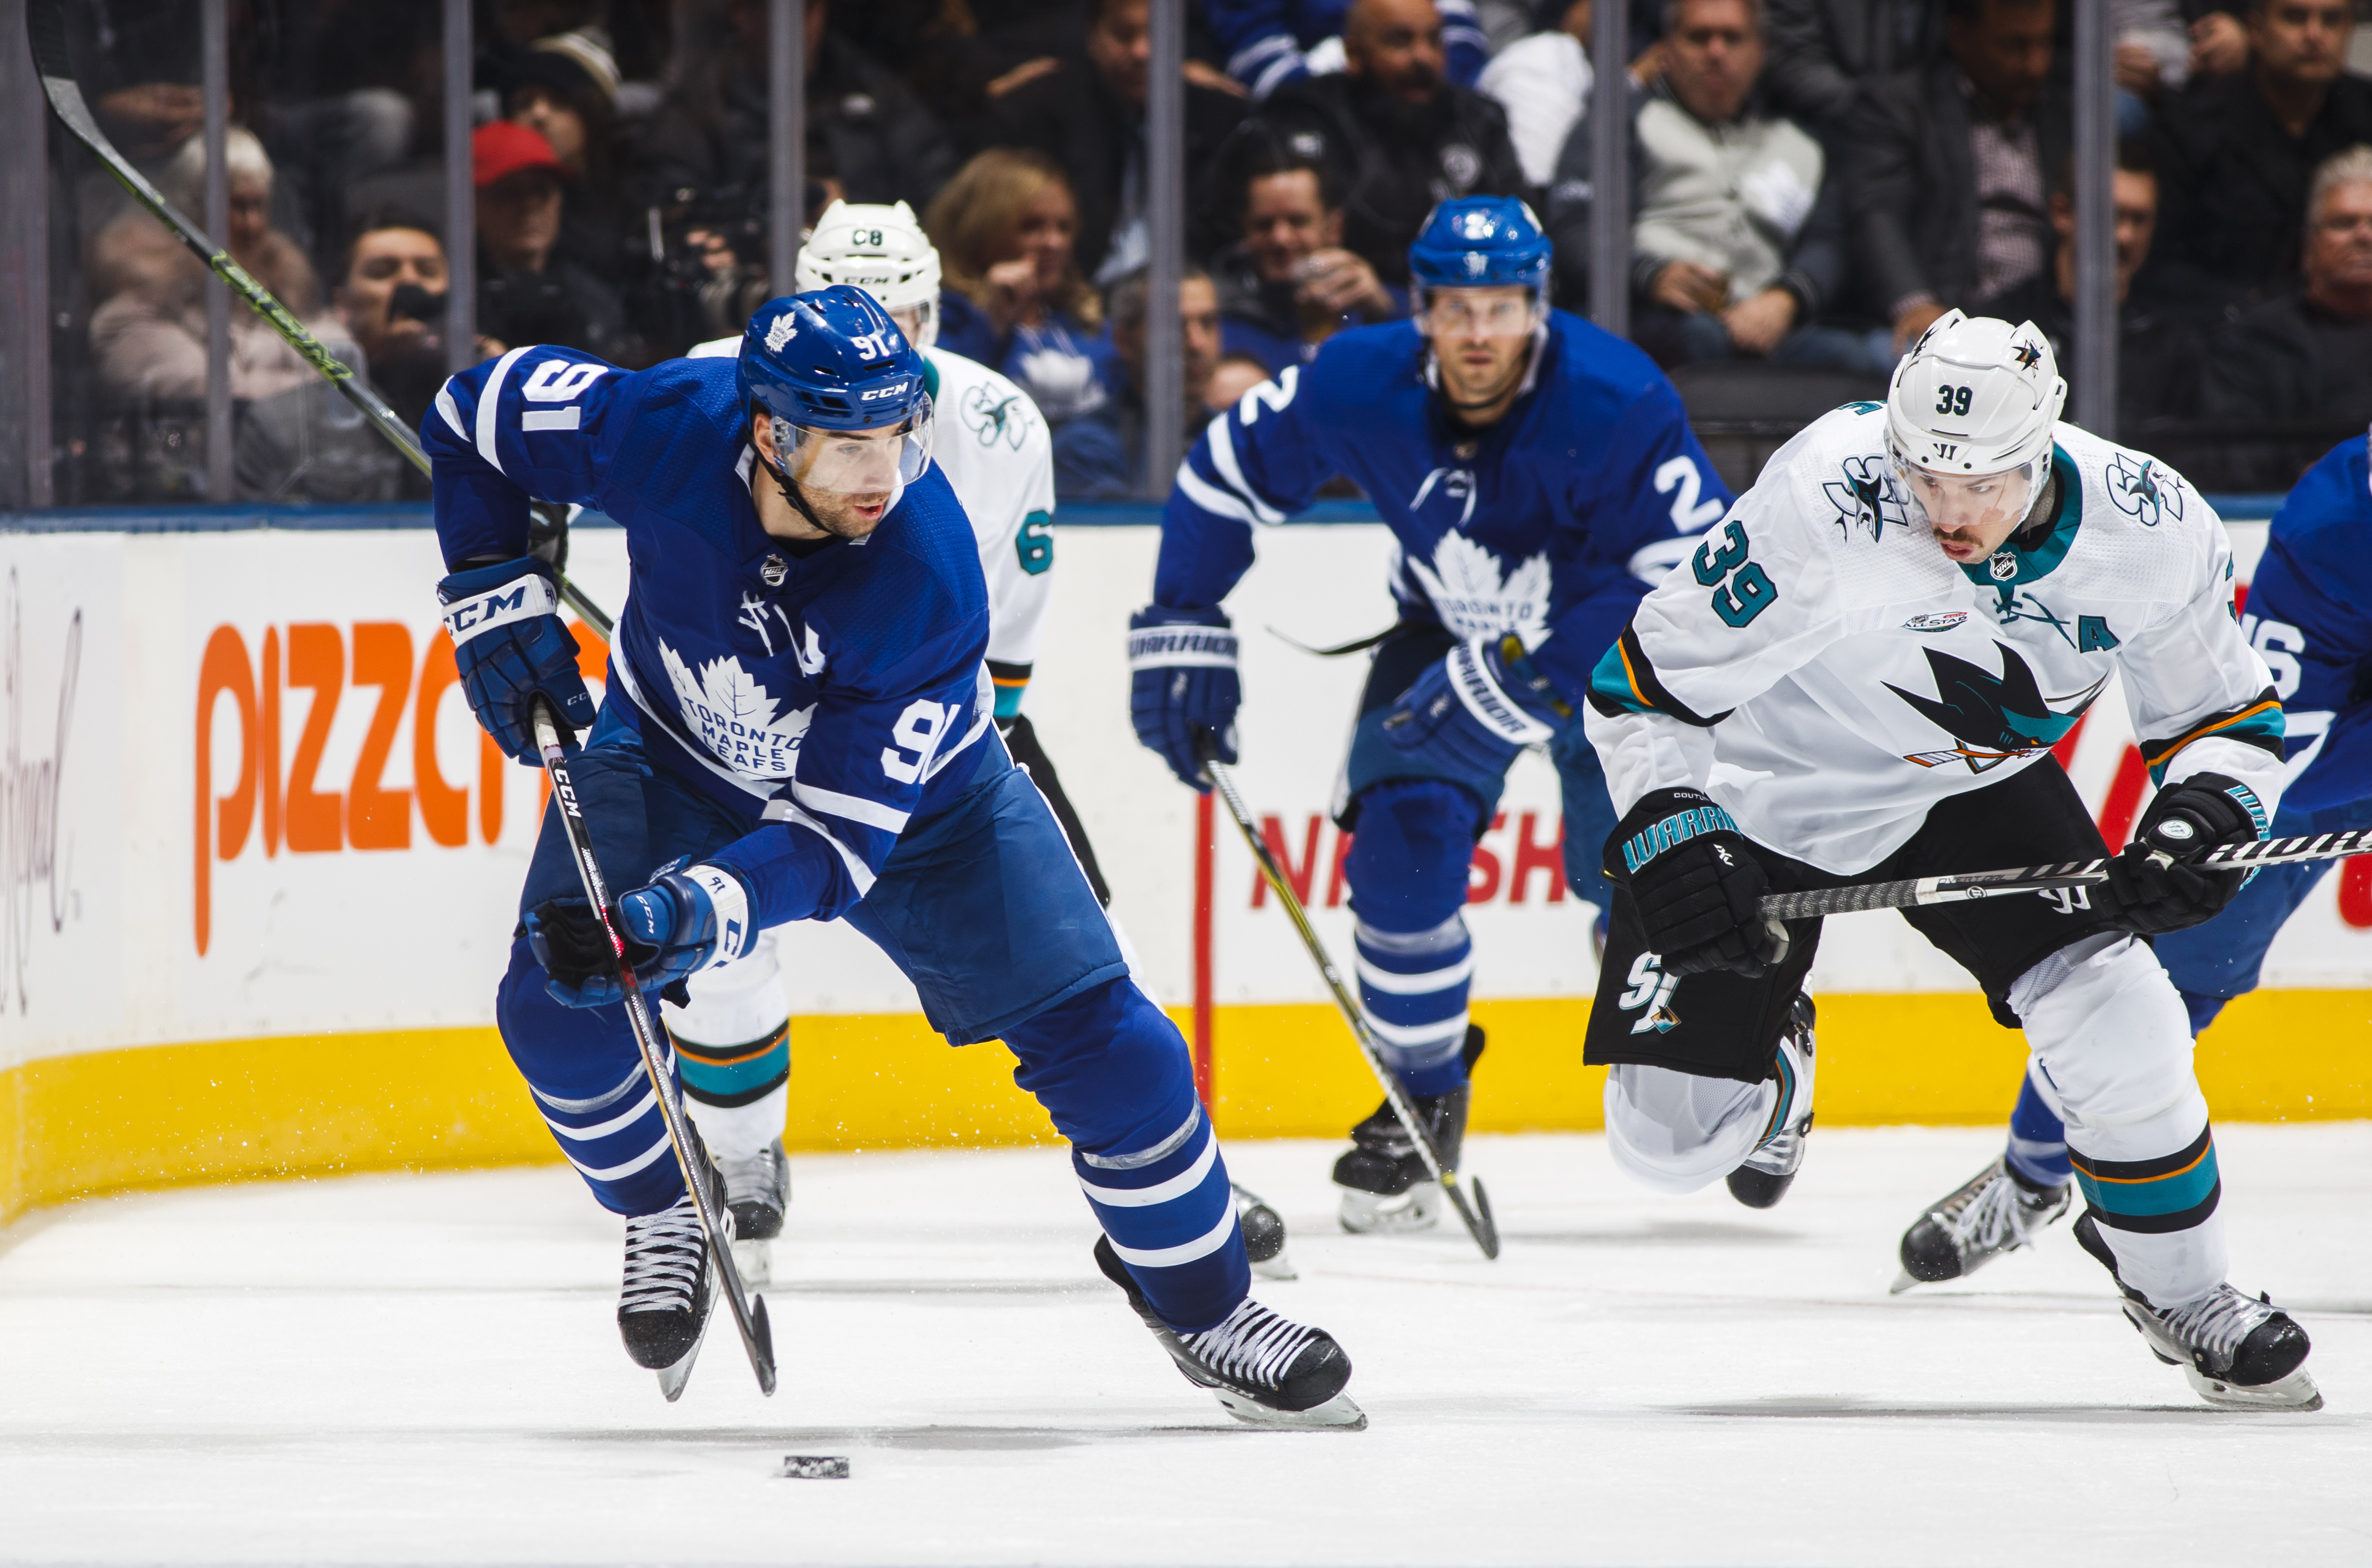 John Tavares #91 of the Toronto Maple Leafs skates against Logan Couture #39 of the San Jose Sharks during the third period at the Scotiabank Arena on November 28, 2018 in Toronto, Ontario, Canada.